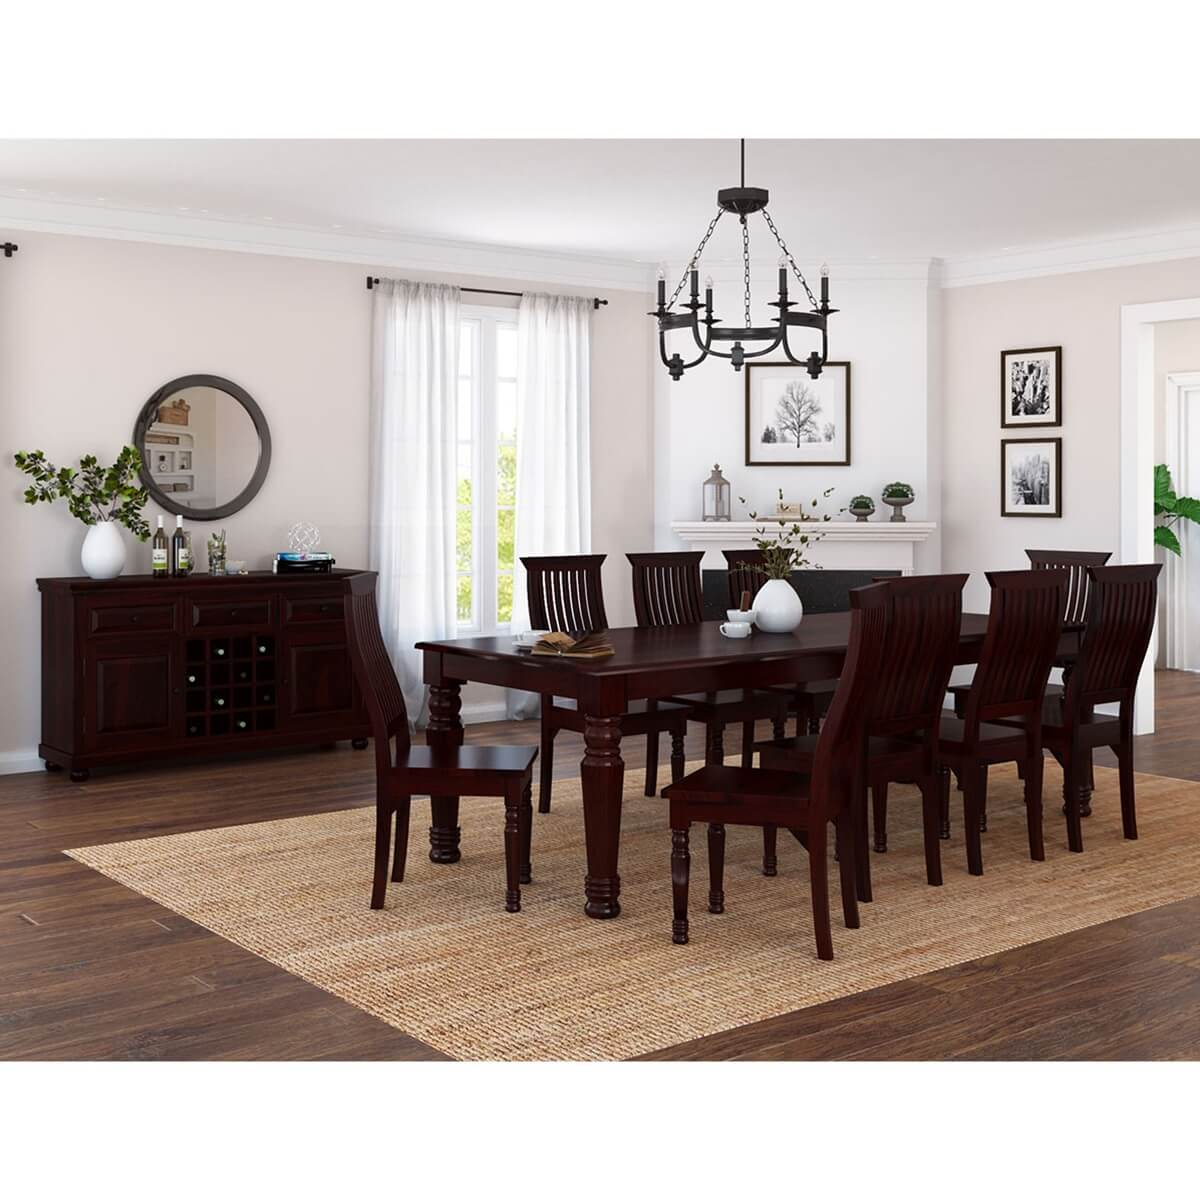 Sensational Colonial American Handcrafted Solid Wood 12 Piece Dining Room Set Machost Co Dining Chair Design Ideas Machostcouk